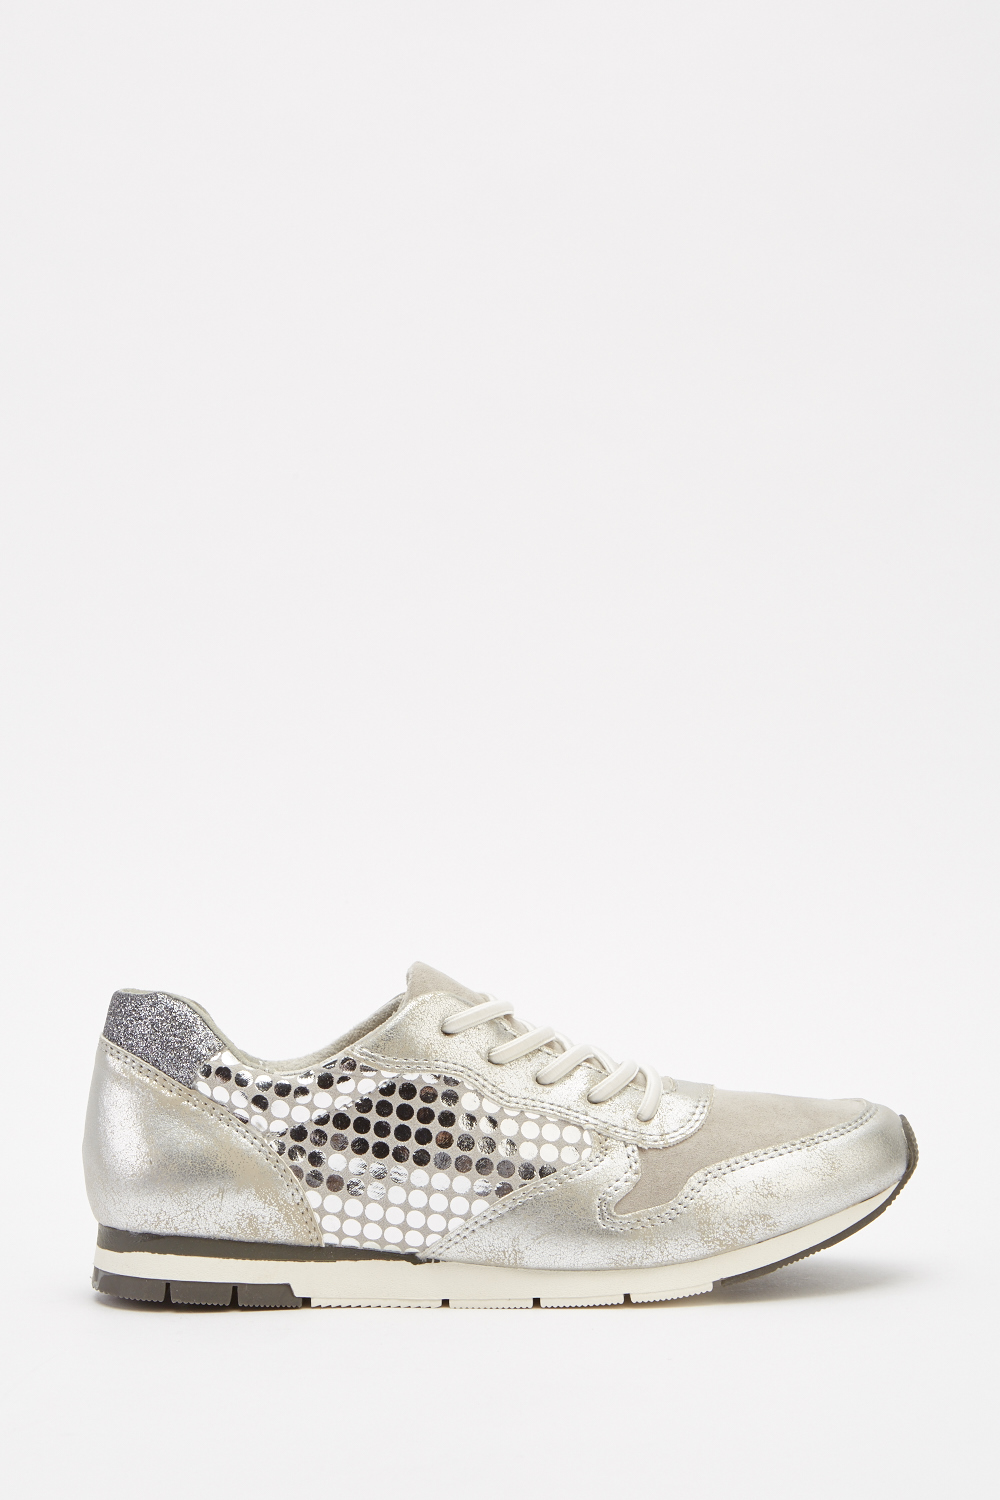 9aa5ccc096e22 Metallic Contrast Lace Up Trainers - Grey/Silver - Just £5